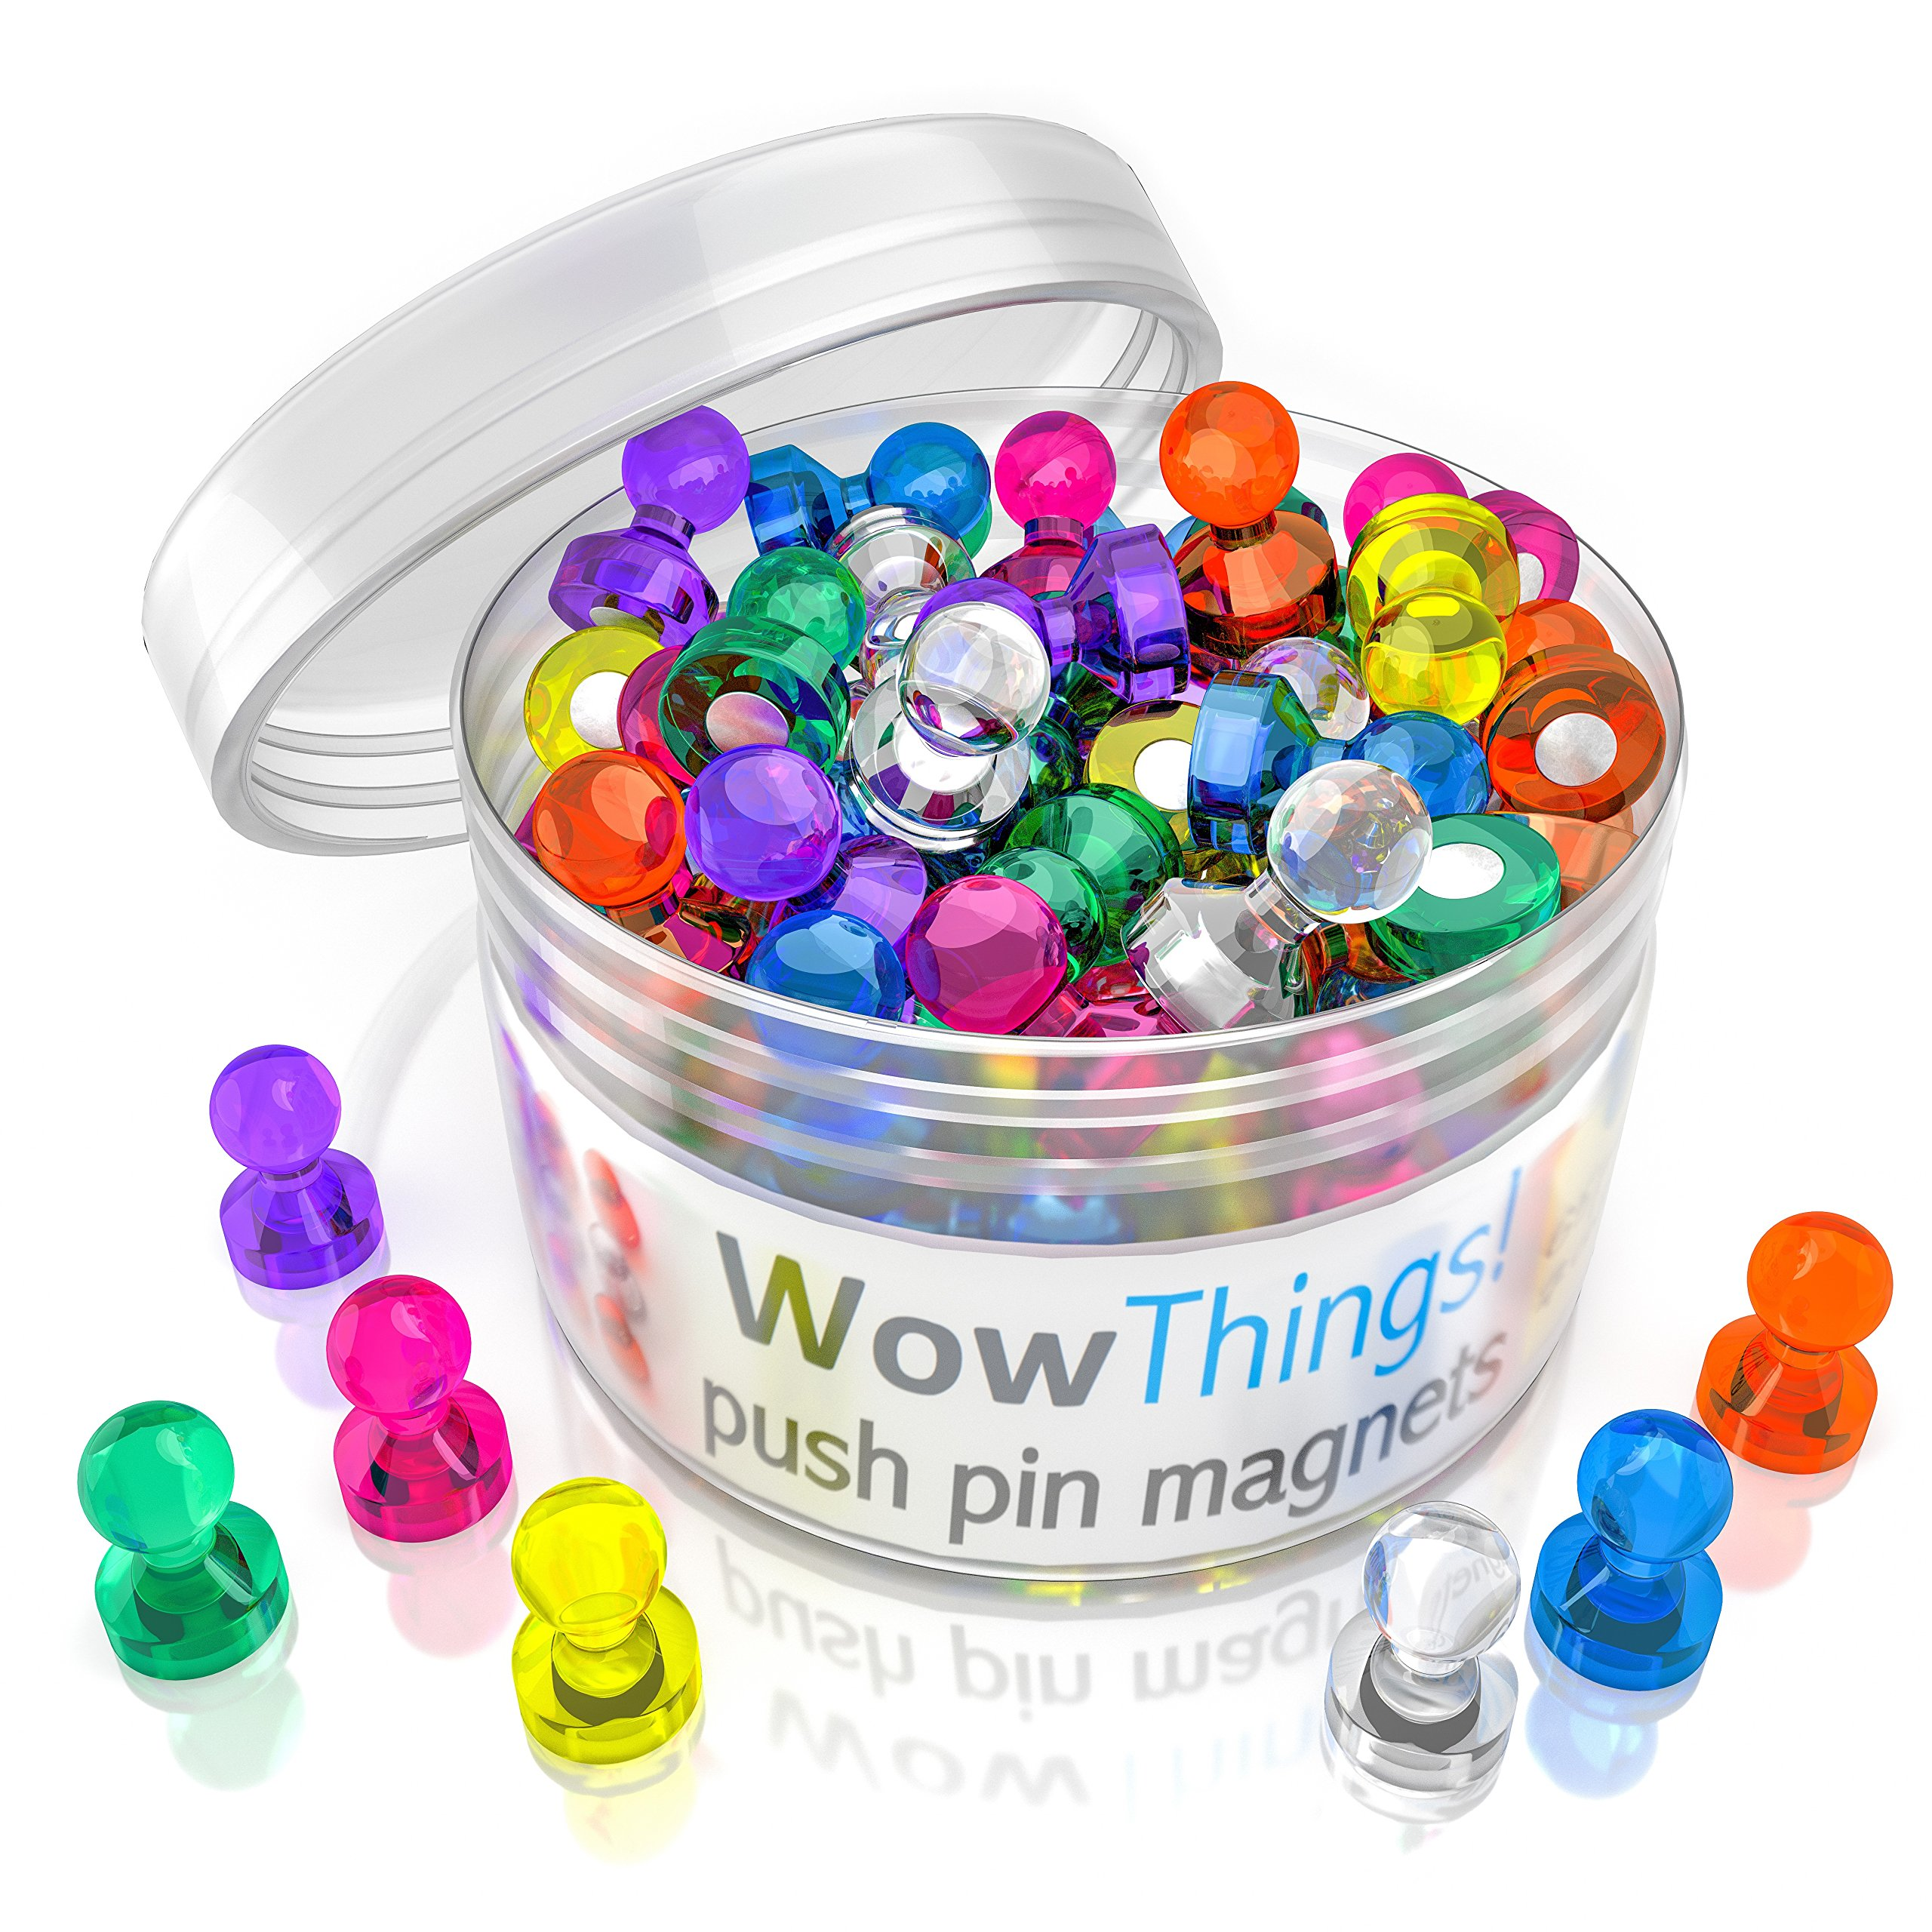 Push Pin Magnets, 65 Pack Assorted Colored Kitchen Office Magnets, Neodymium Mini Fridge Magnets Strong, Heavy Duty Push Pins, Perfect For Classroom Map Dry Erase Whiteboard Magnets, Teacher Magnets by WowThings!